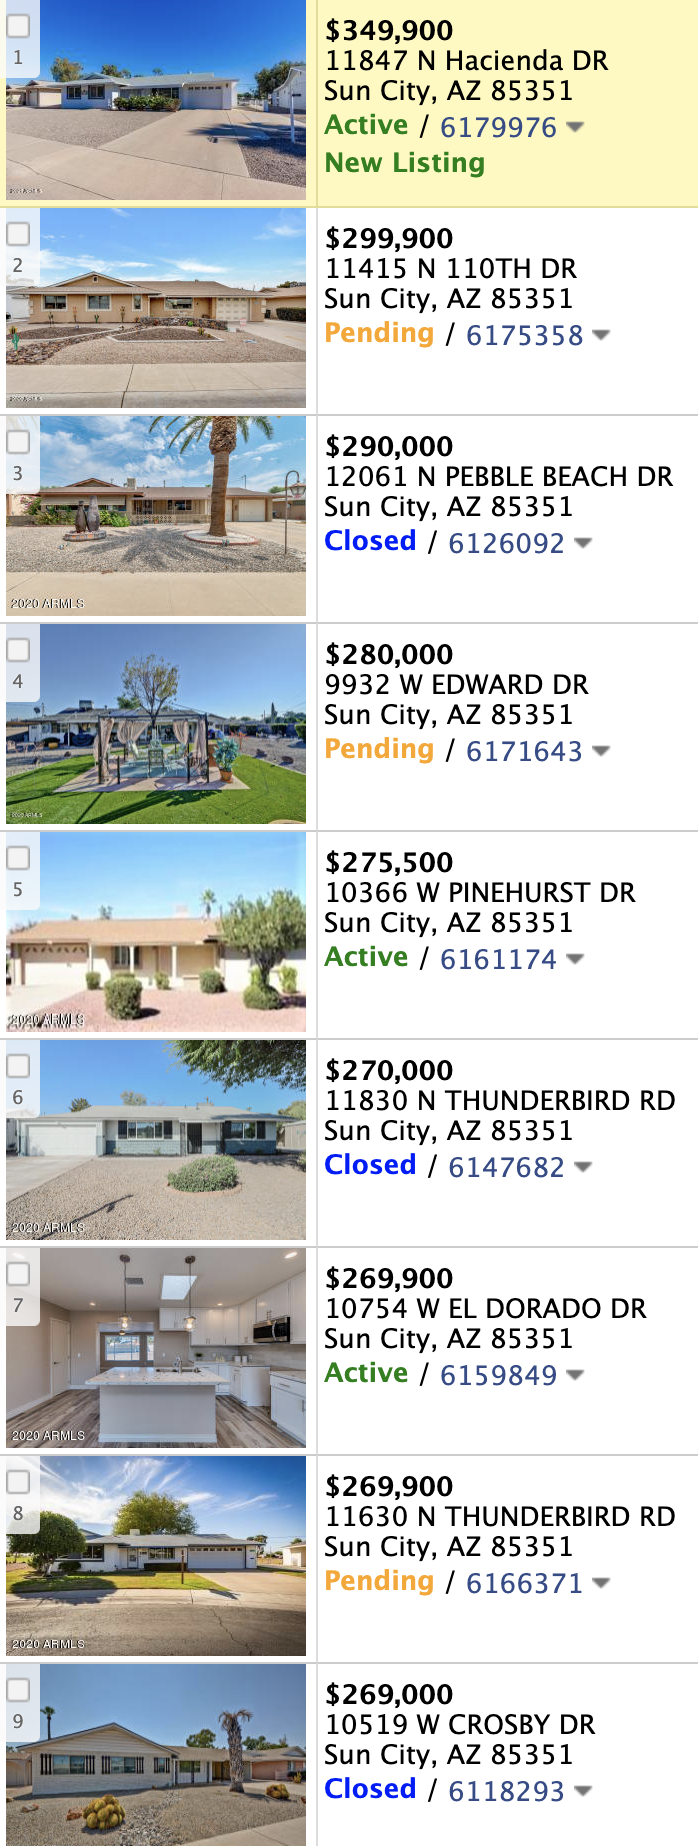 10735 W Hope Dr, Sun City AZ 85351 comps list